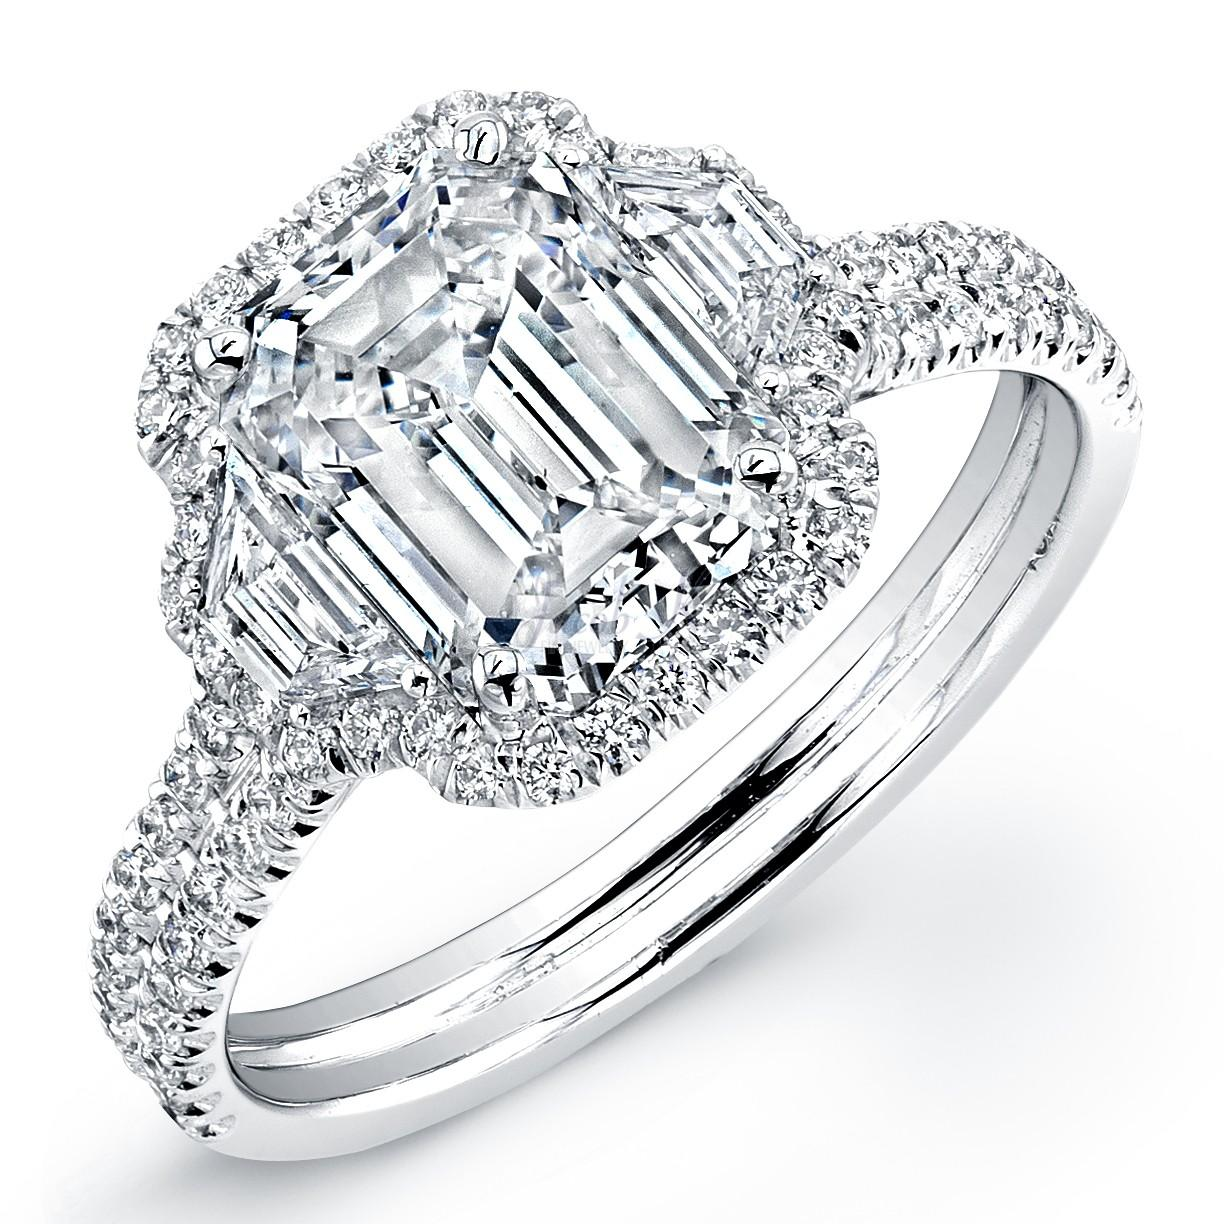 High end engagement ring designers wedding and bridal for Wedding rings designers